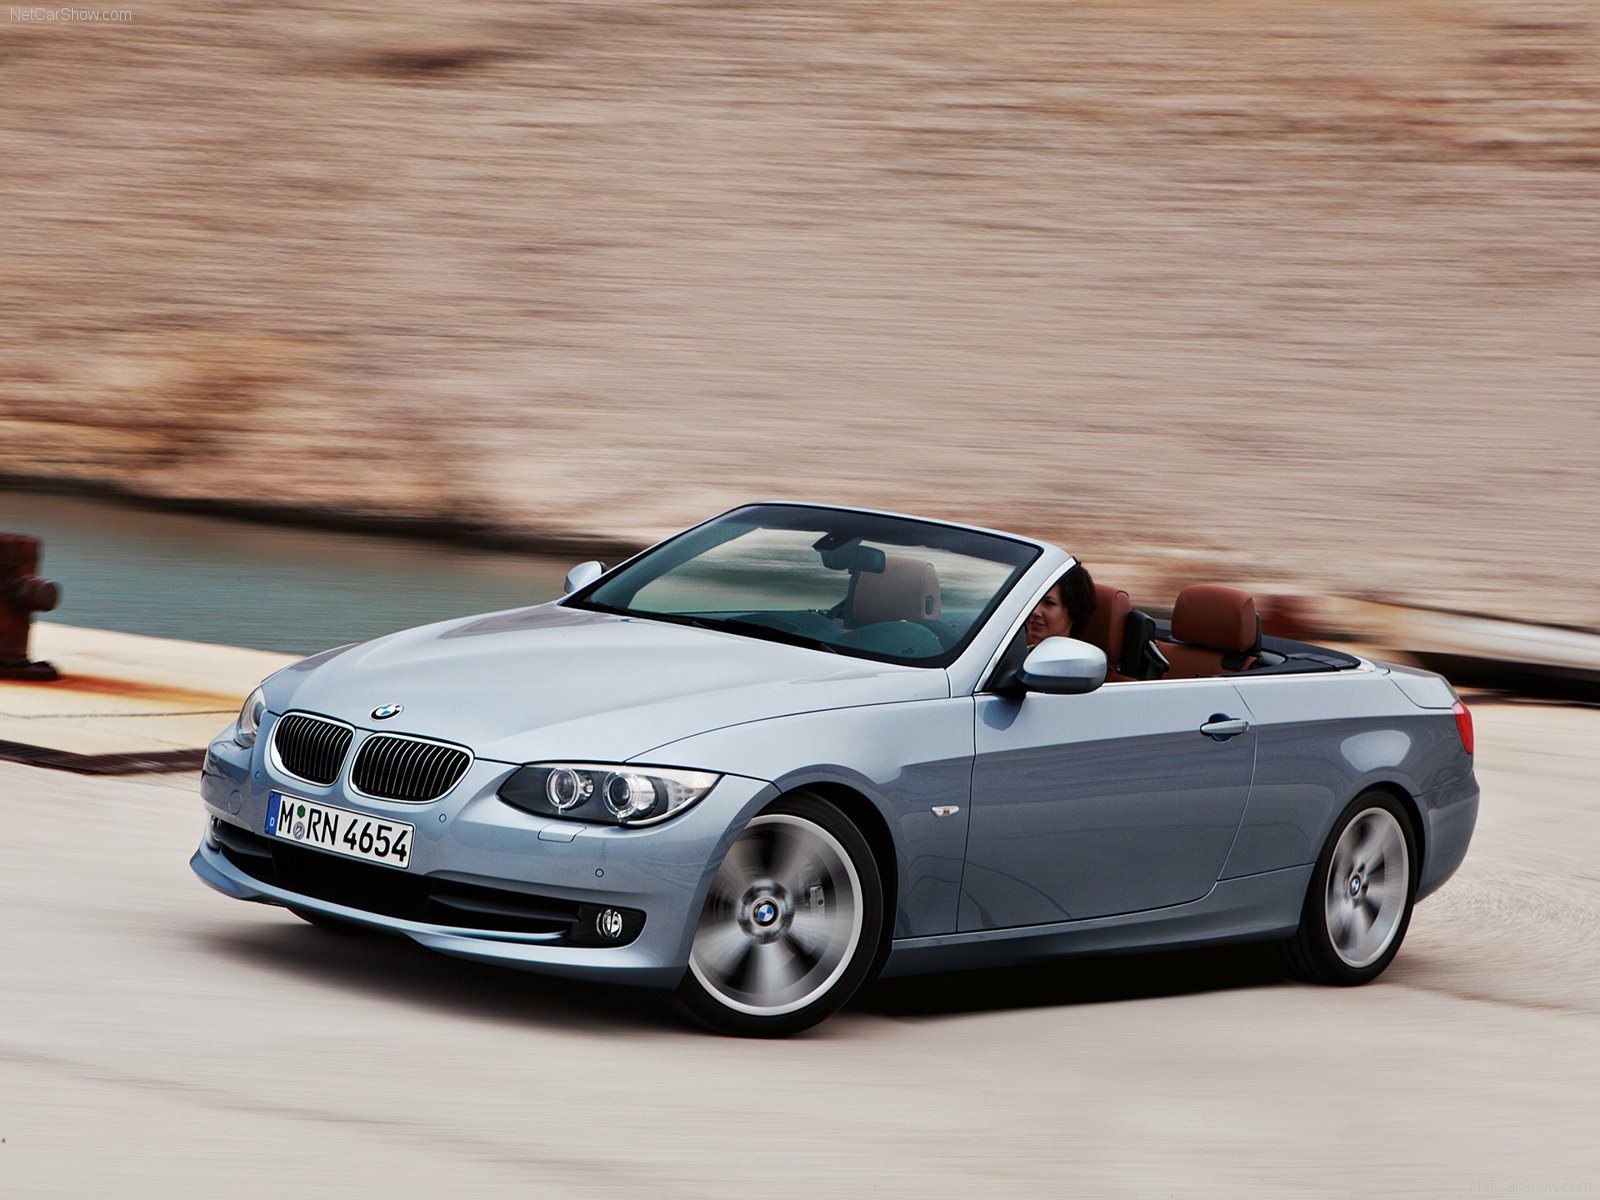 BMW 3-series E93 Convertible photo 70695